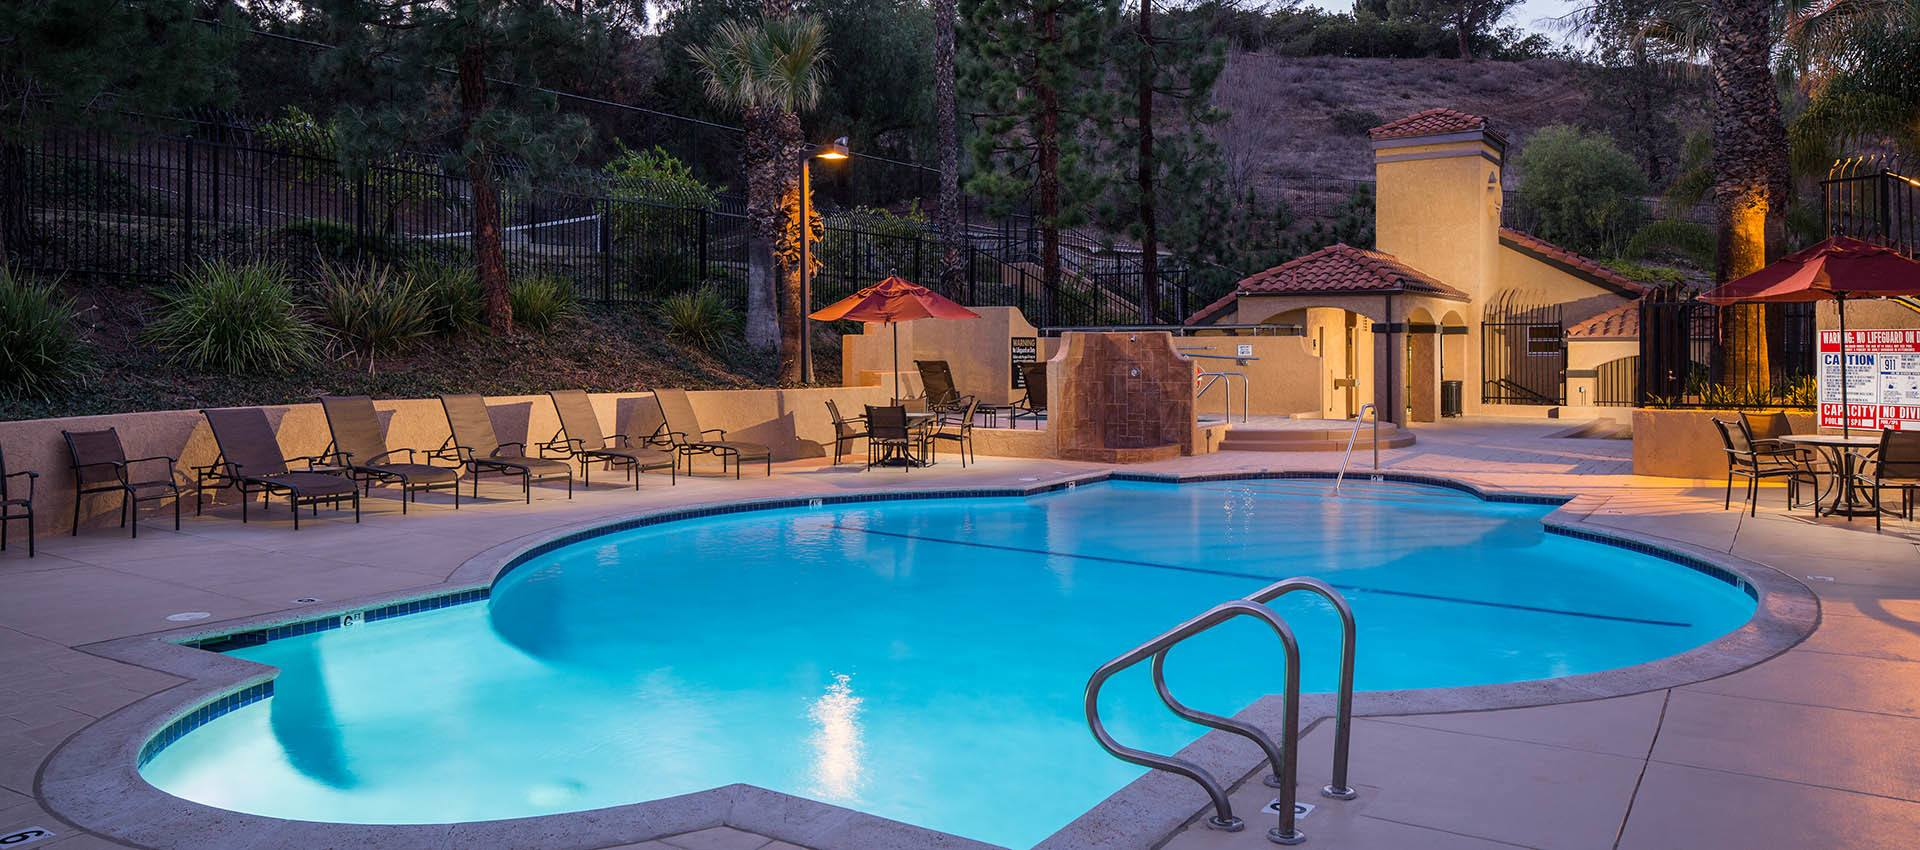 Expansive Pool Deck with WiFi at Shadow Ridge Apartment Homes in Simi Valley